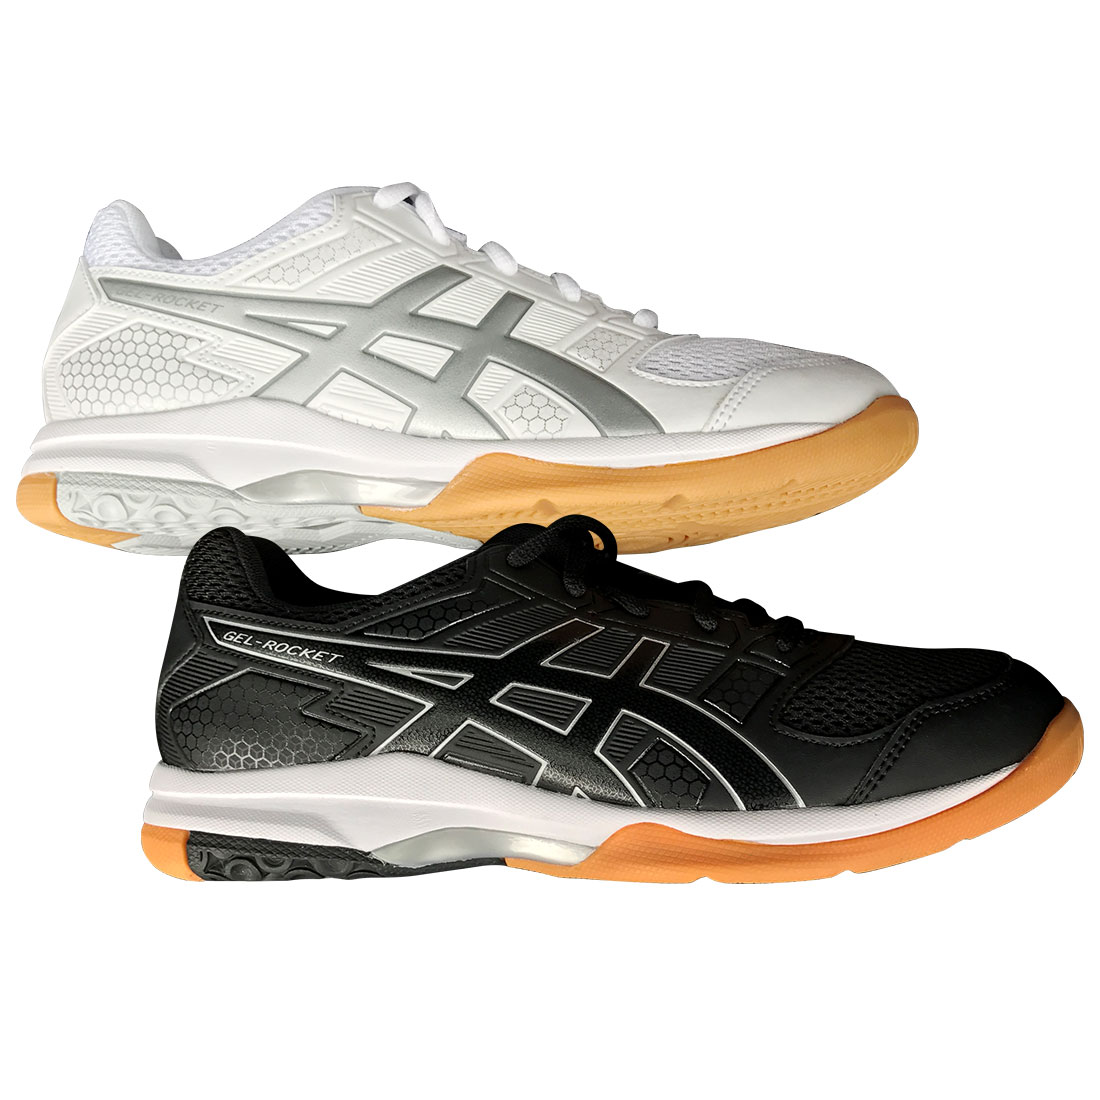 39e5a0b6c969 Asics Gel-Rocket 8 Indoor Shoe - longstreth.com